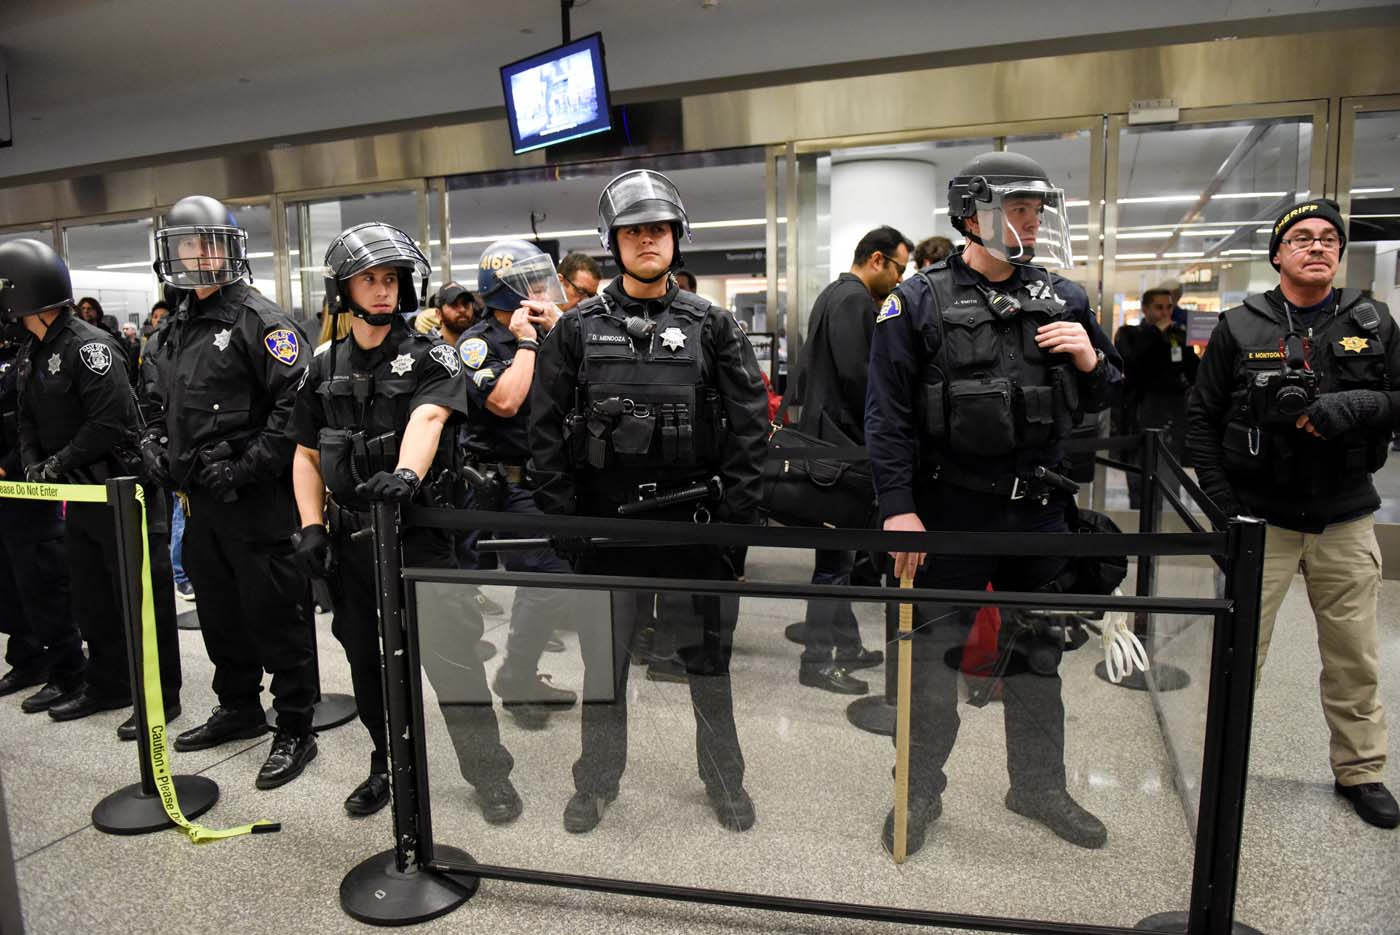 Police block a security check point inside Terminal 4 at San Francisco International Airport in San Francisco, California, U.S., January 28, 2017. REUTERS/Kate Munsch